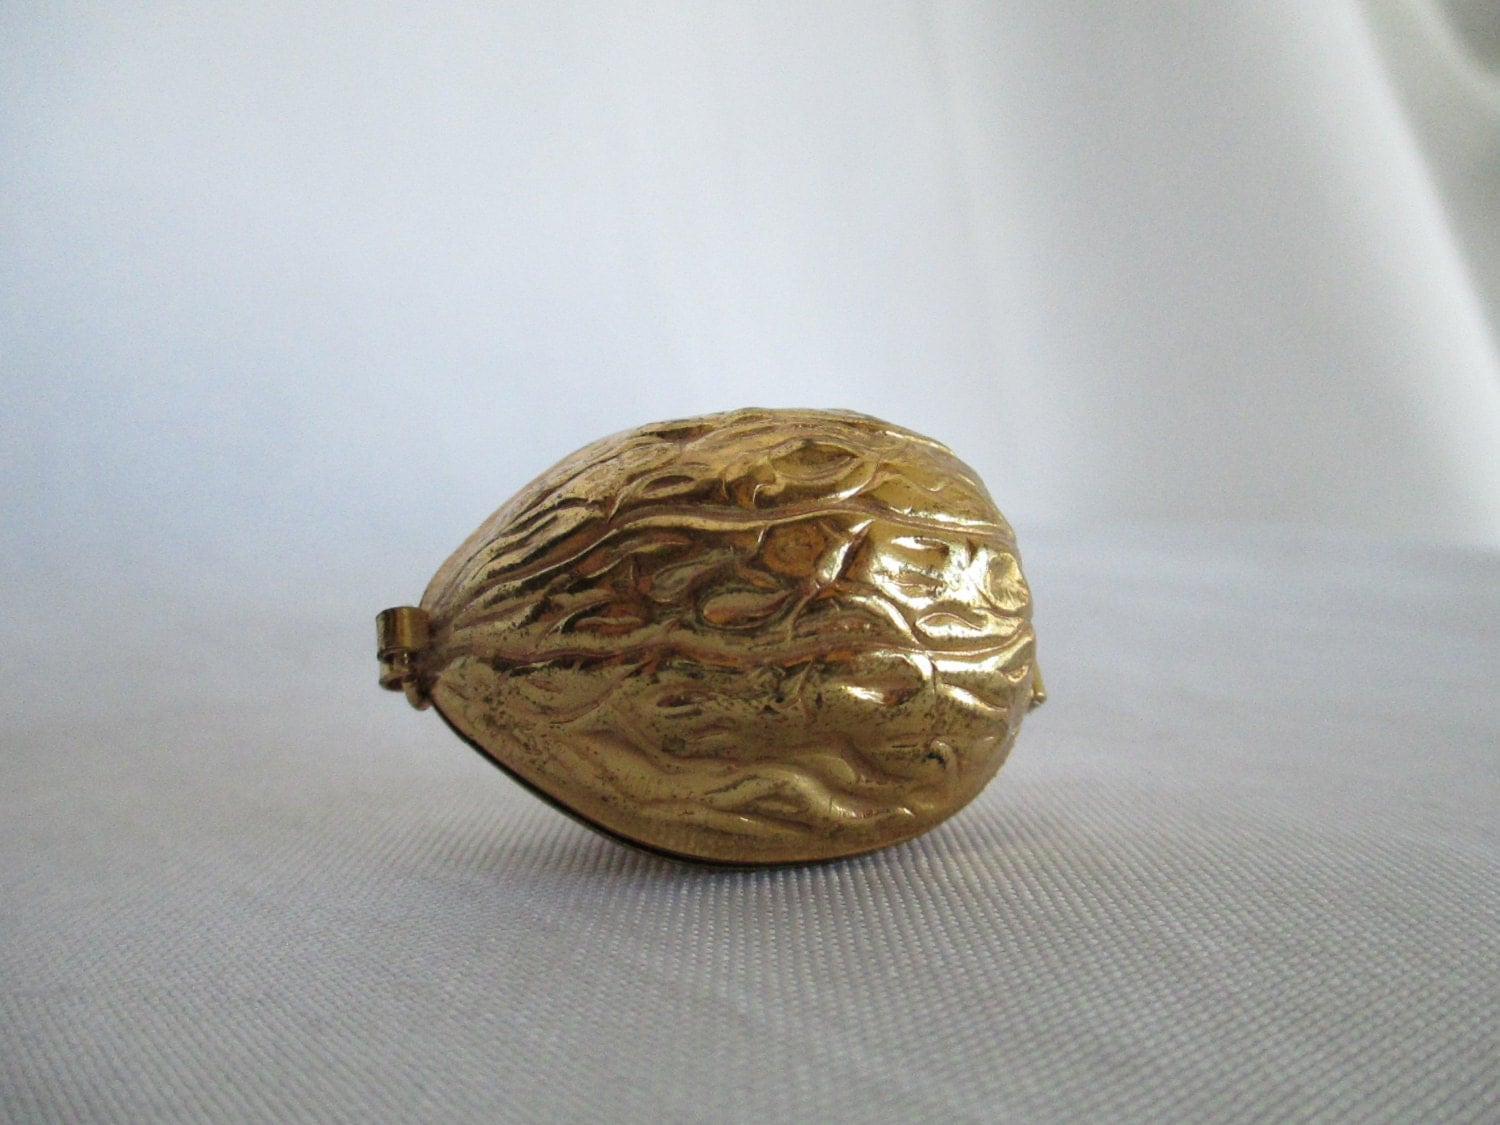 Vintage Pendant Mini Sewing Kit Gold Brass Walnut Earnest Steiner Original - BleuBelleMaison